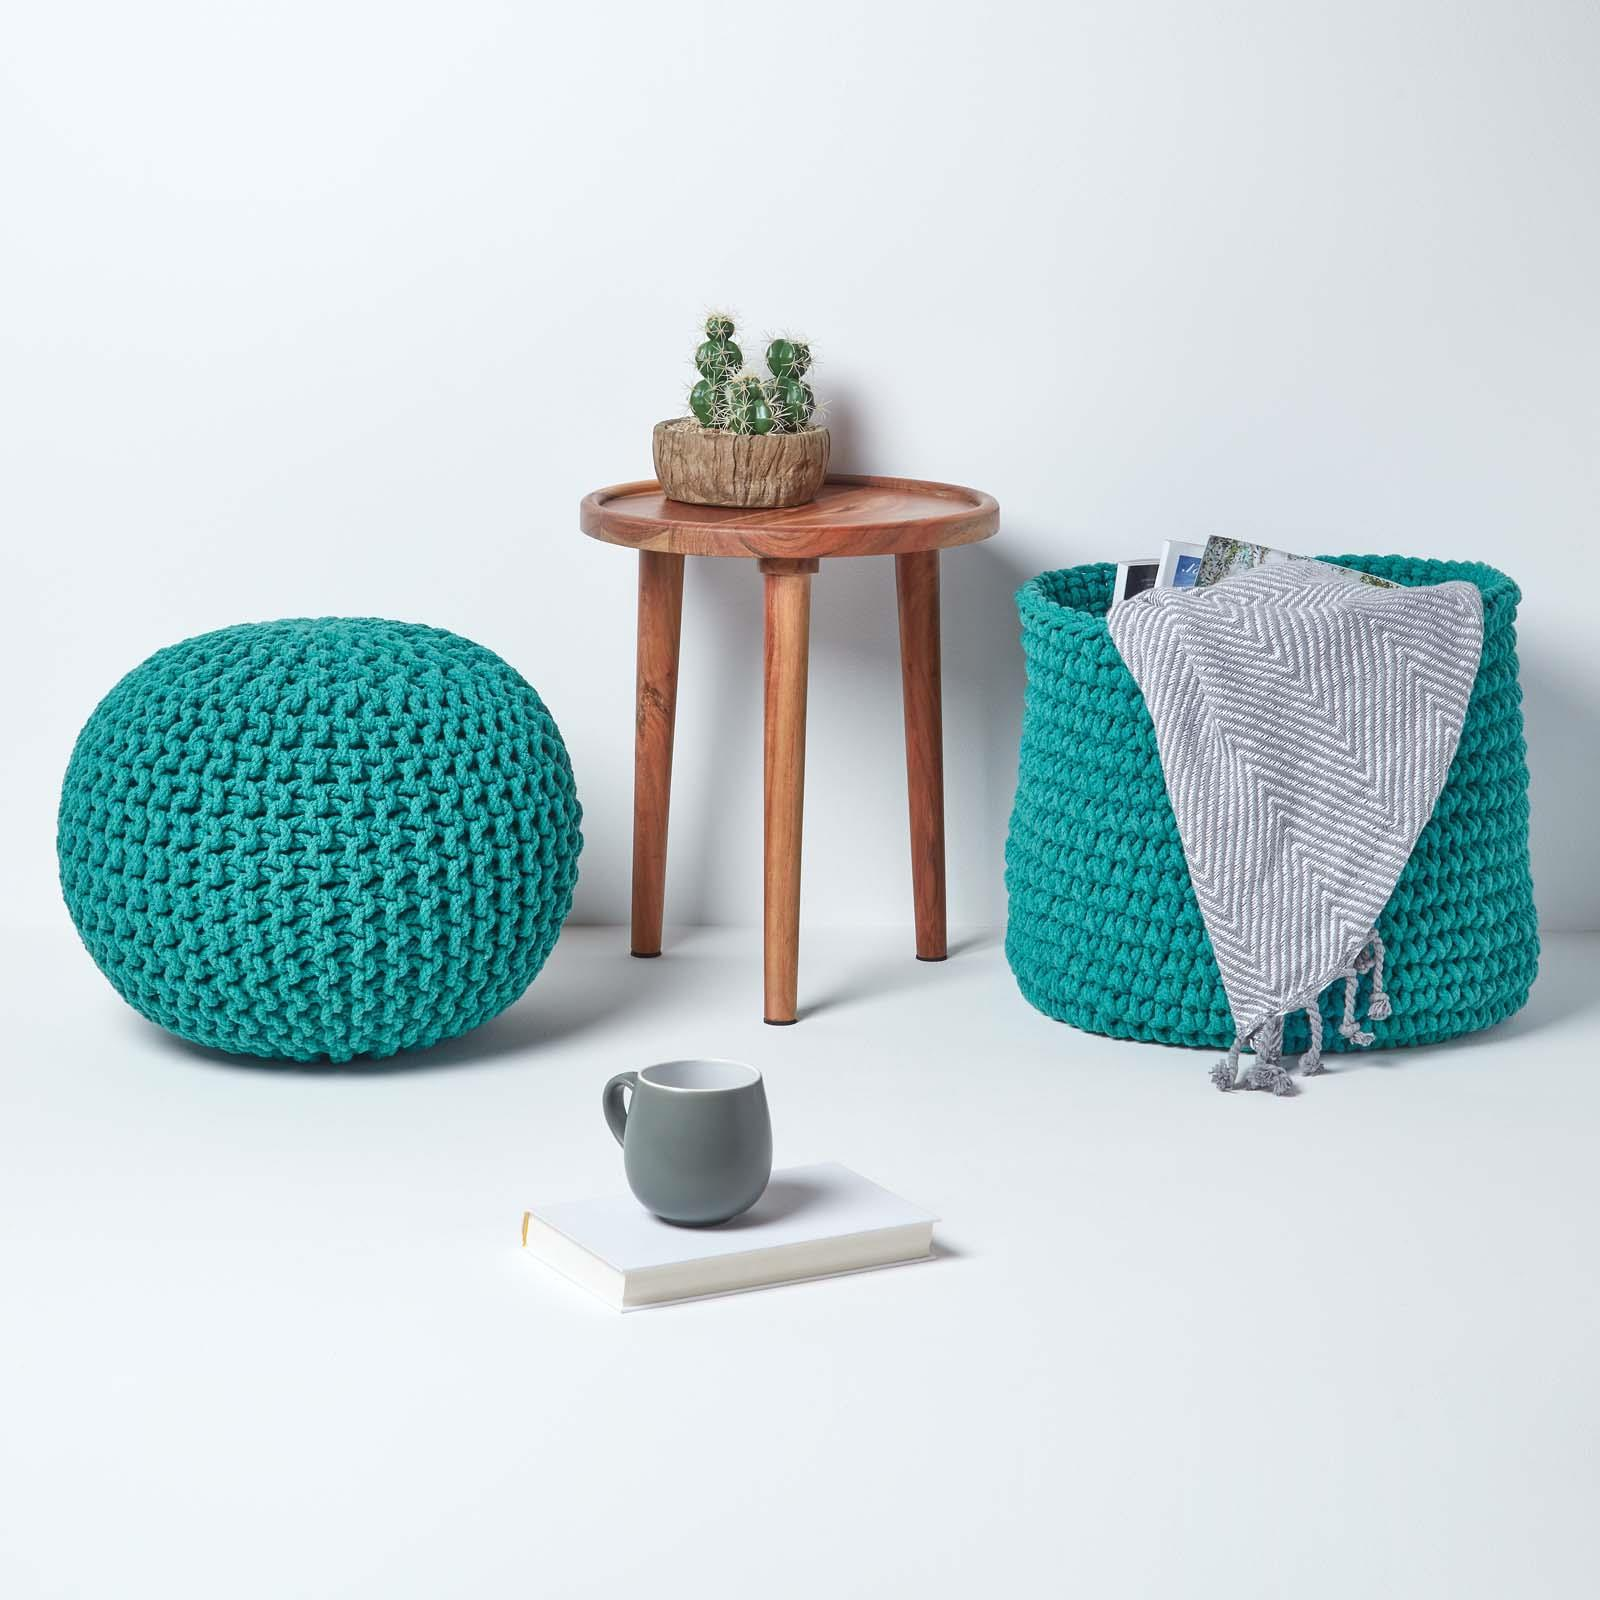 Hand-Knitted-100-Cotton-Pouffes-Round-Sphere-Or-Cube-Square-Chunky-Footstools thumbnail 198